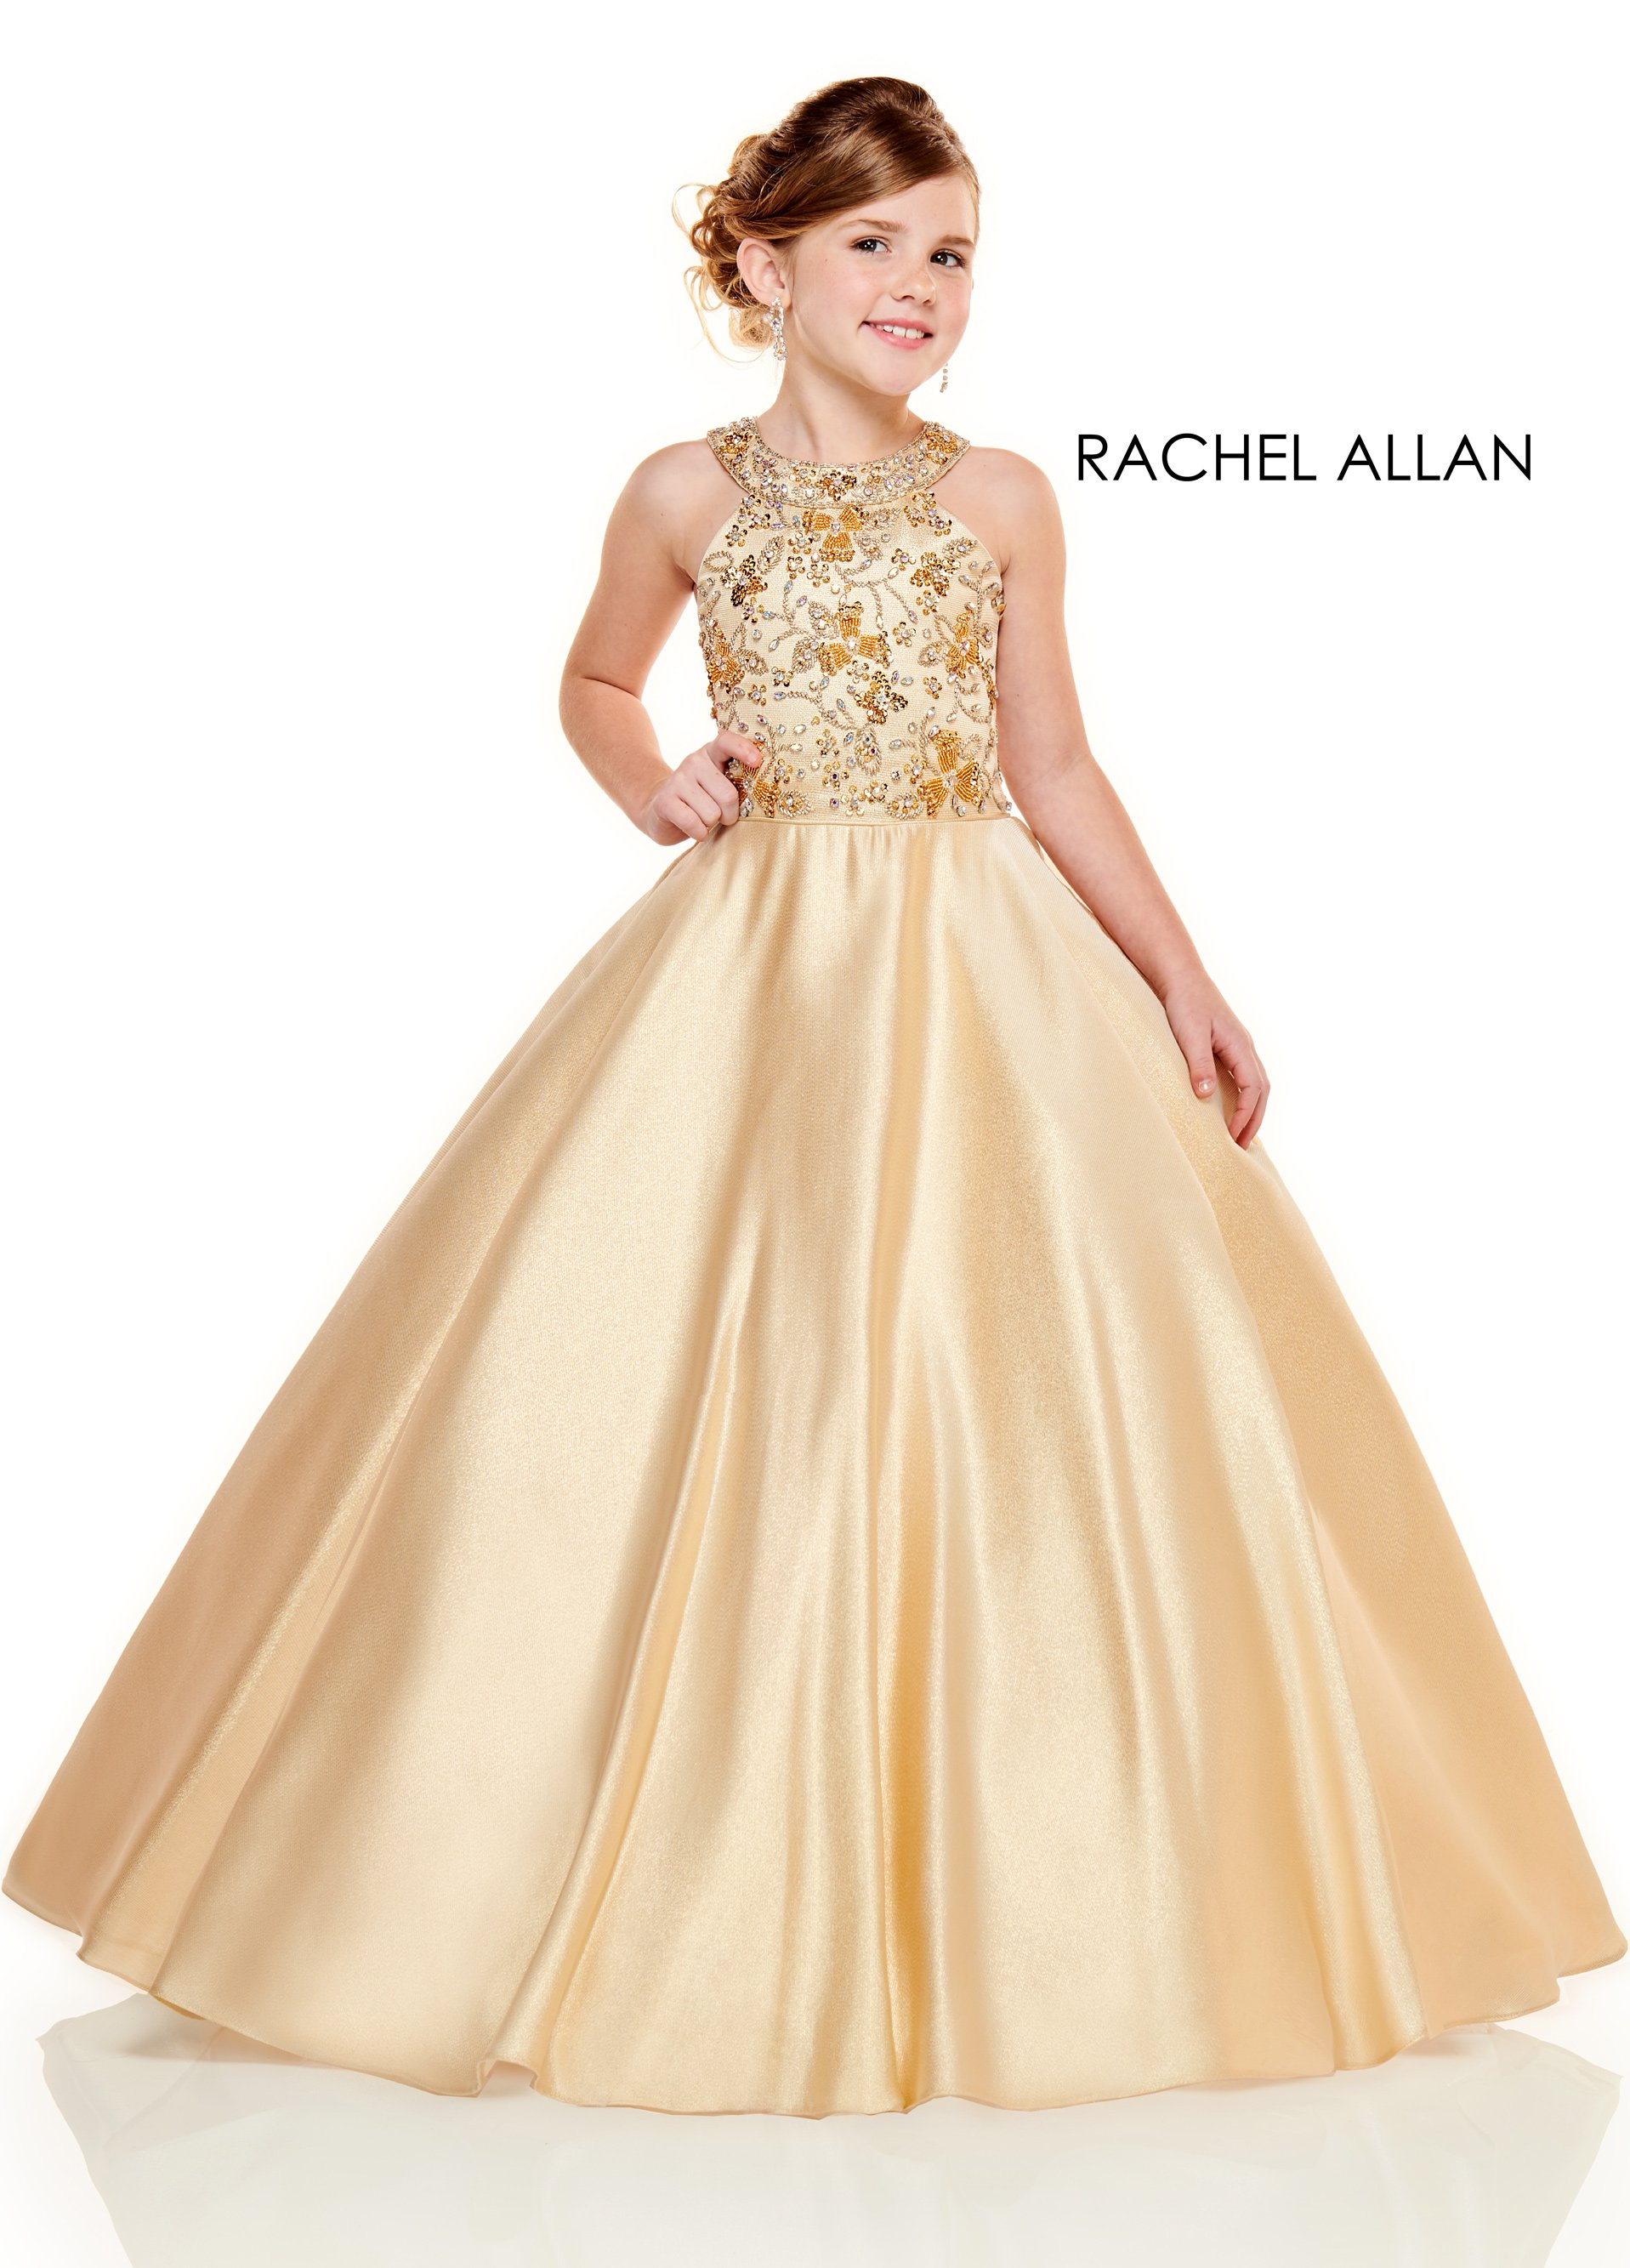 Halter Ball Gowns Little Girl Pageant Dresses in Gold Color